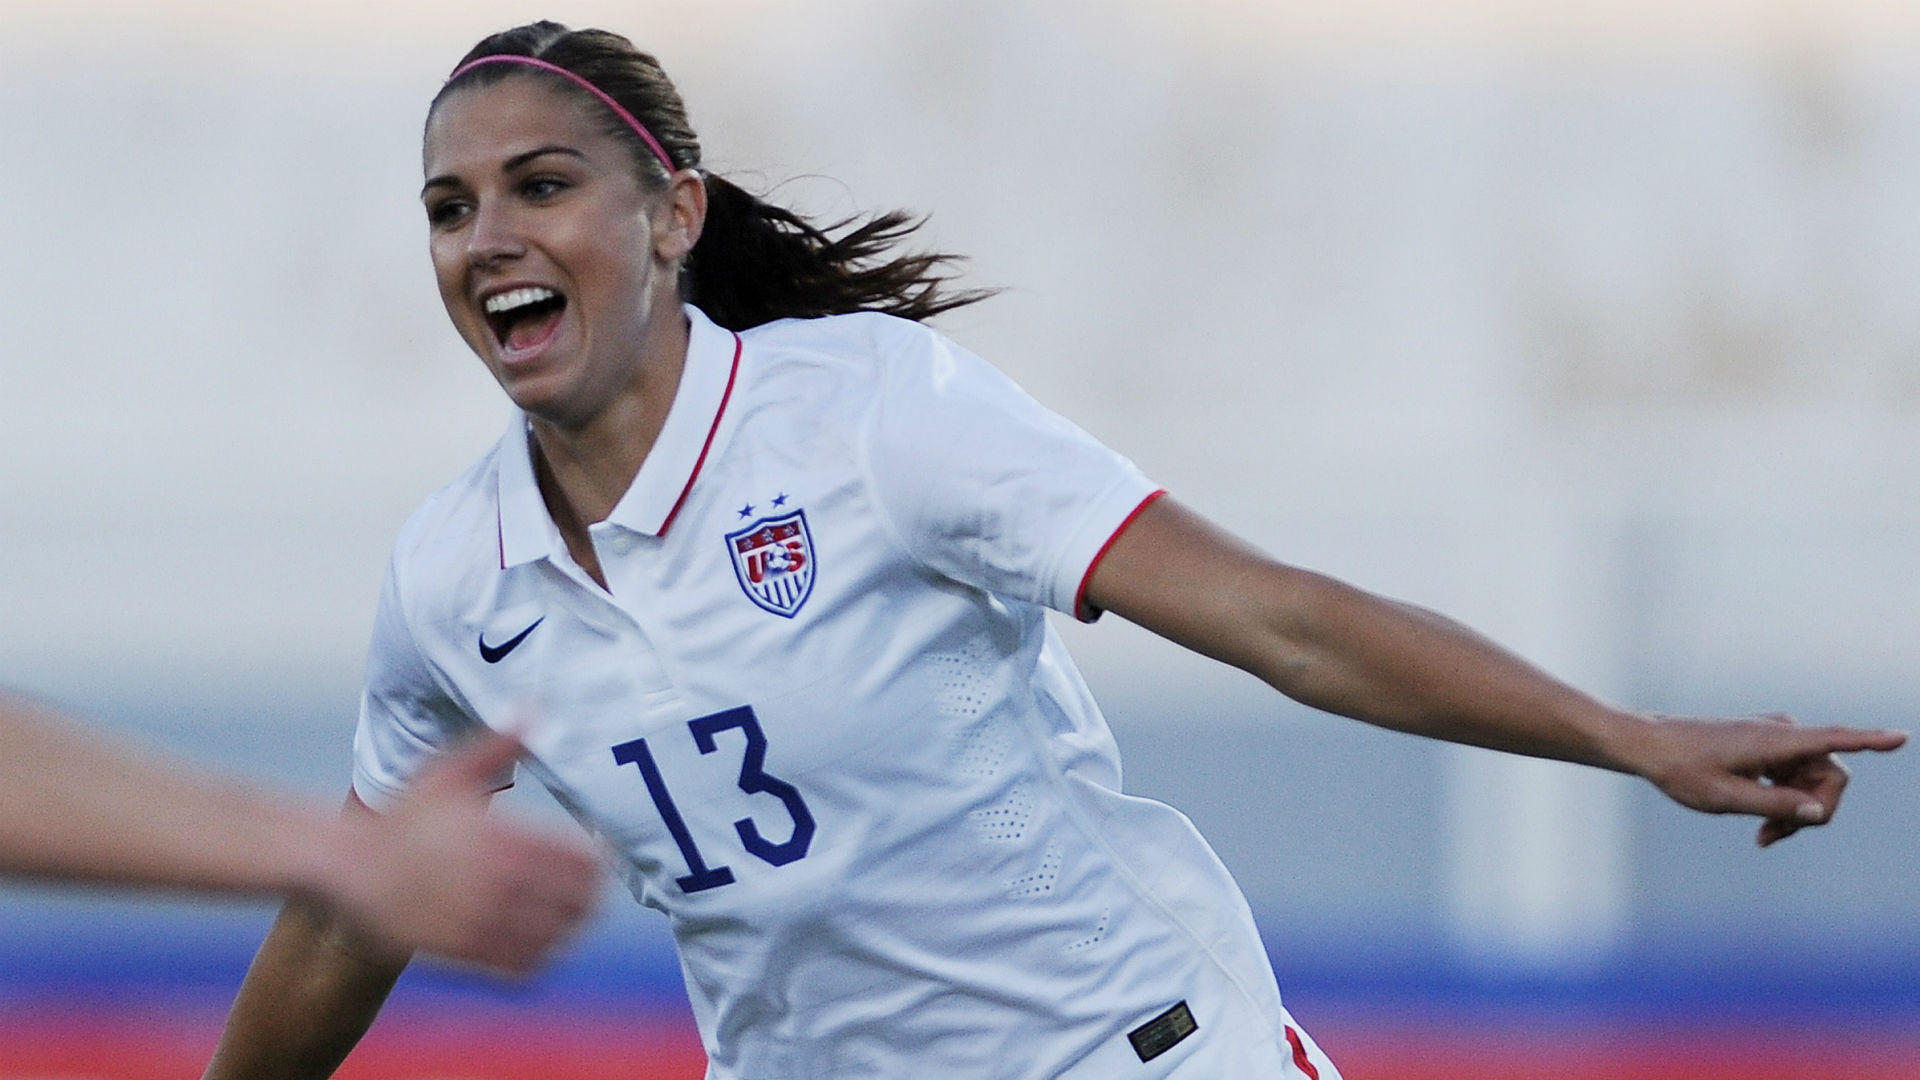 Alex Morgan will play overseas, signs with France's Olympique Lyonnais